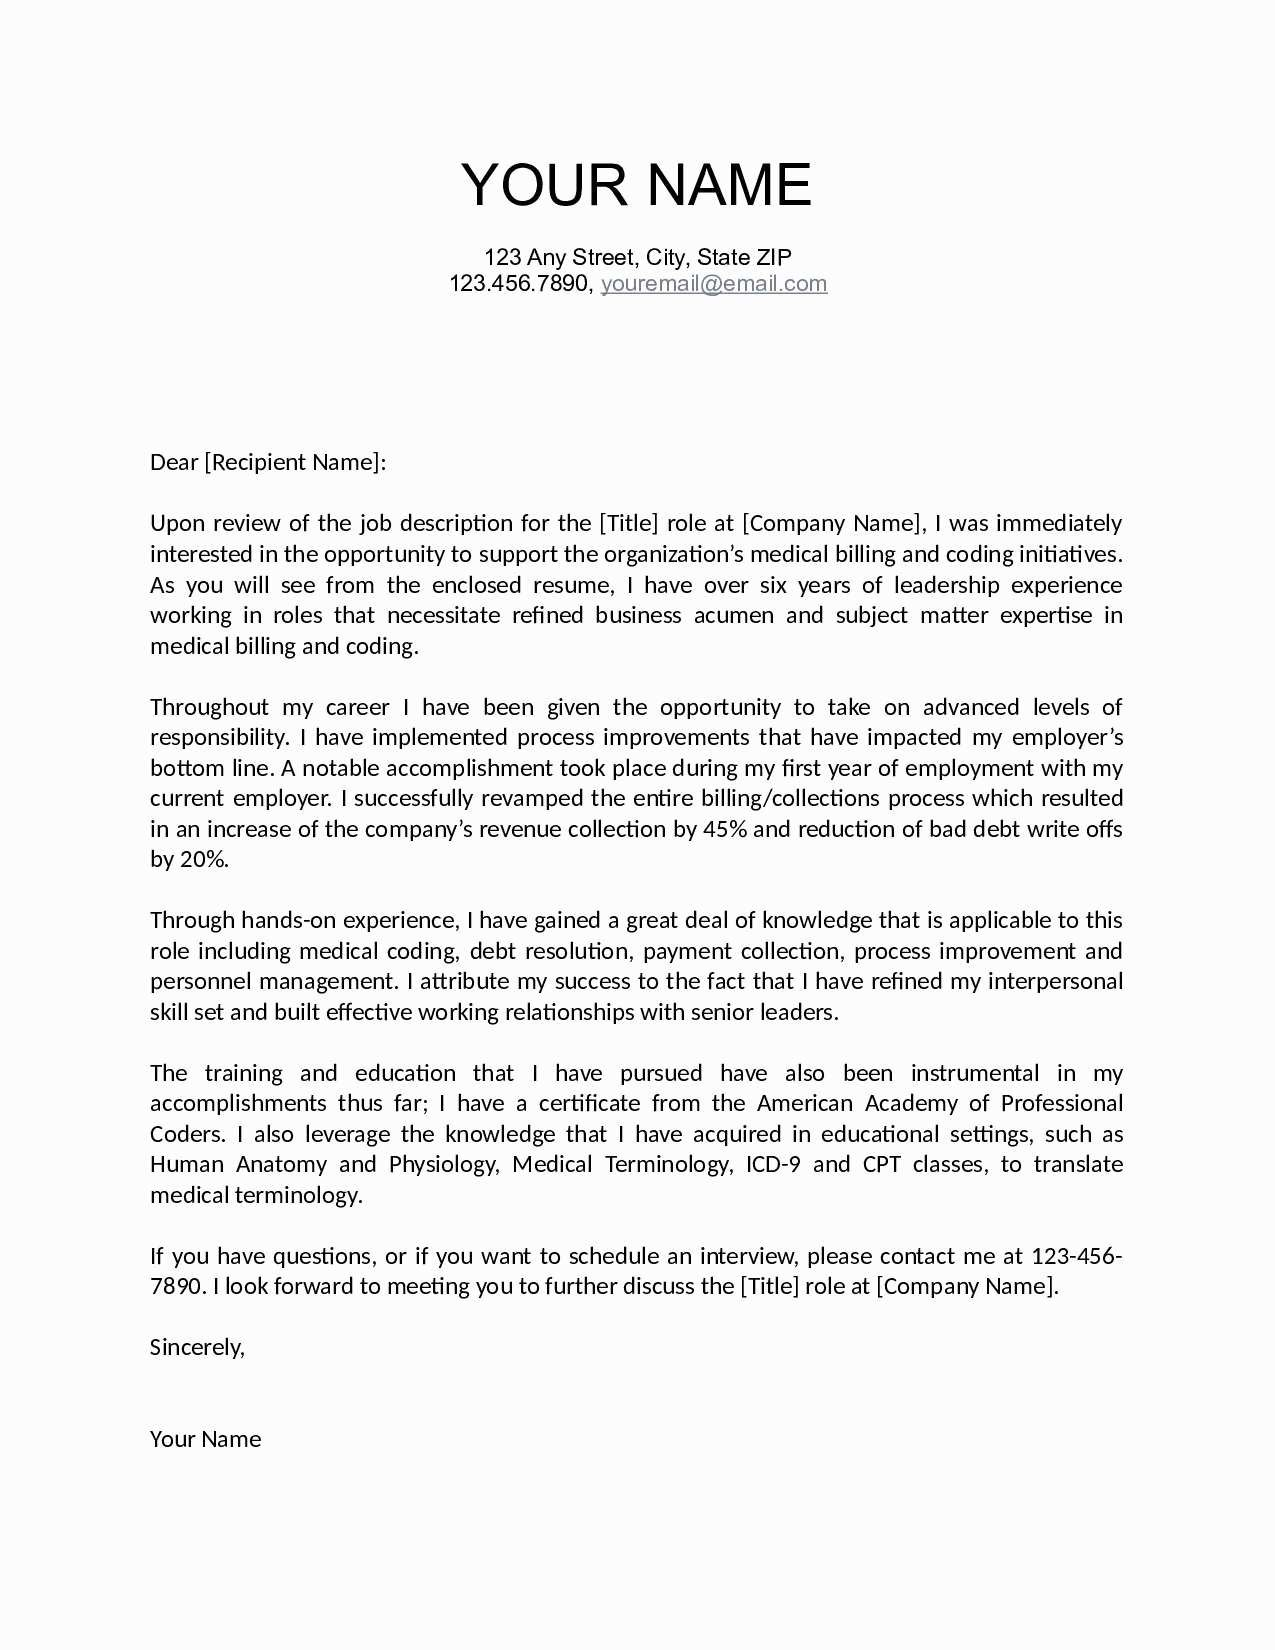 Graduate School Cover Letter Template - How to Write A Cover Letter for A Resume Unique Job Fer Letter